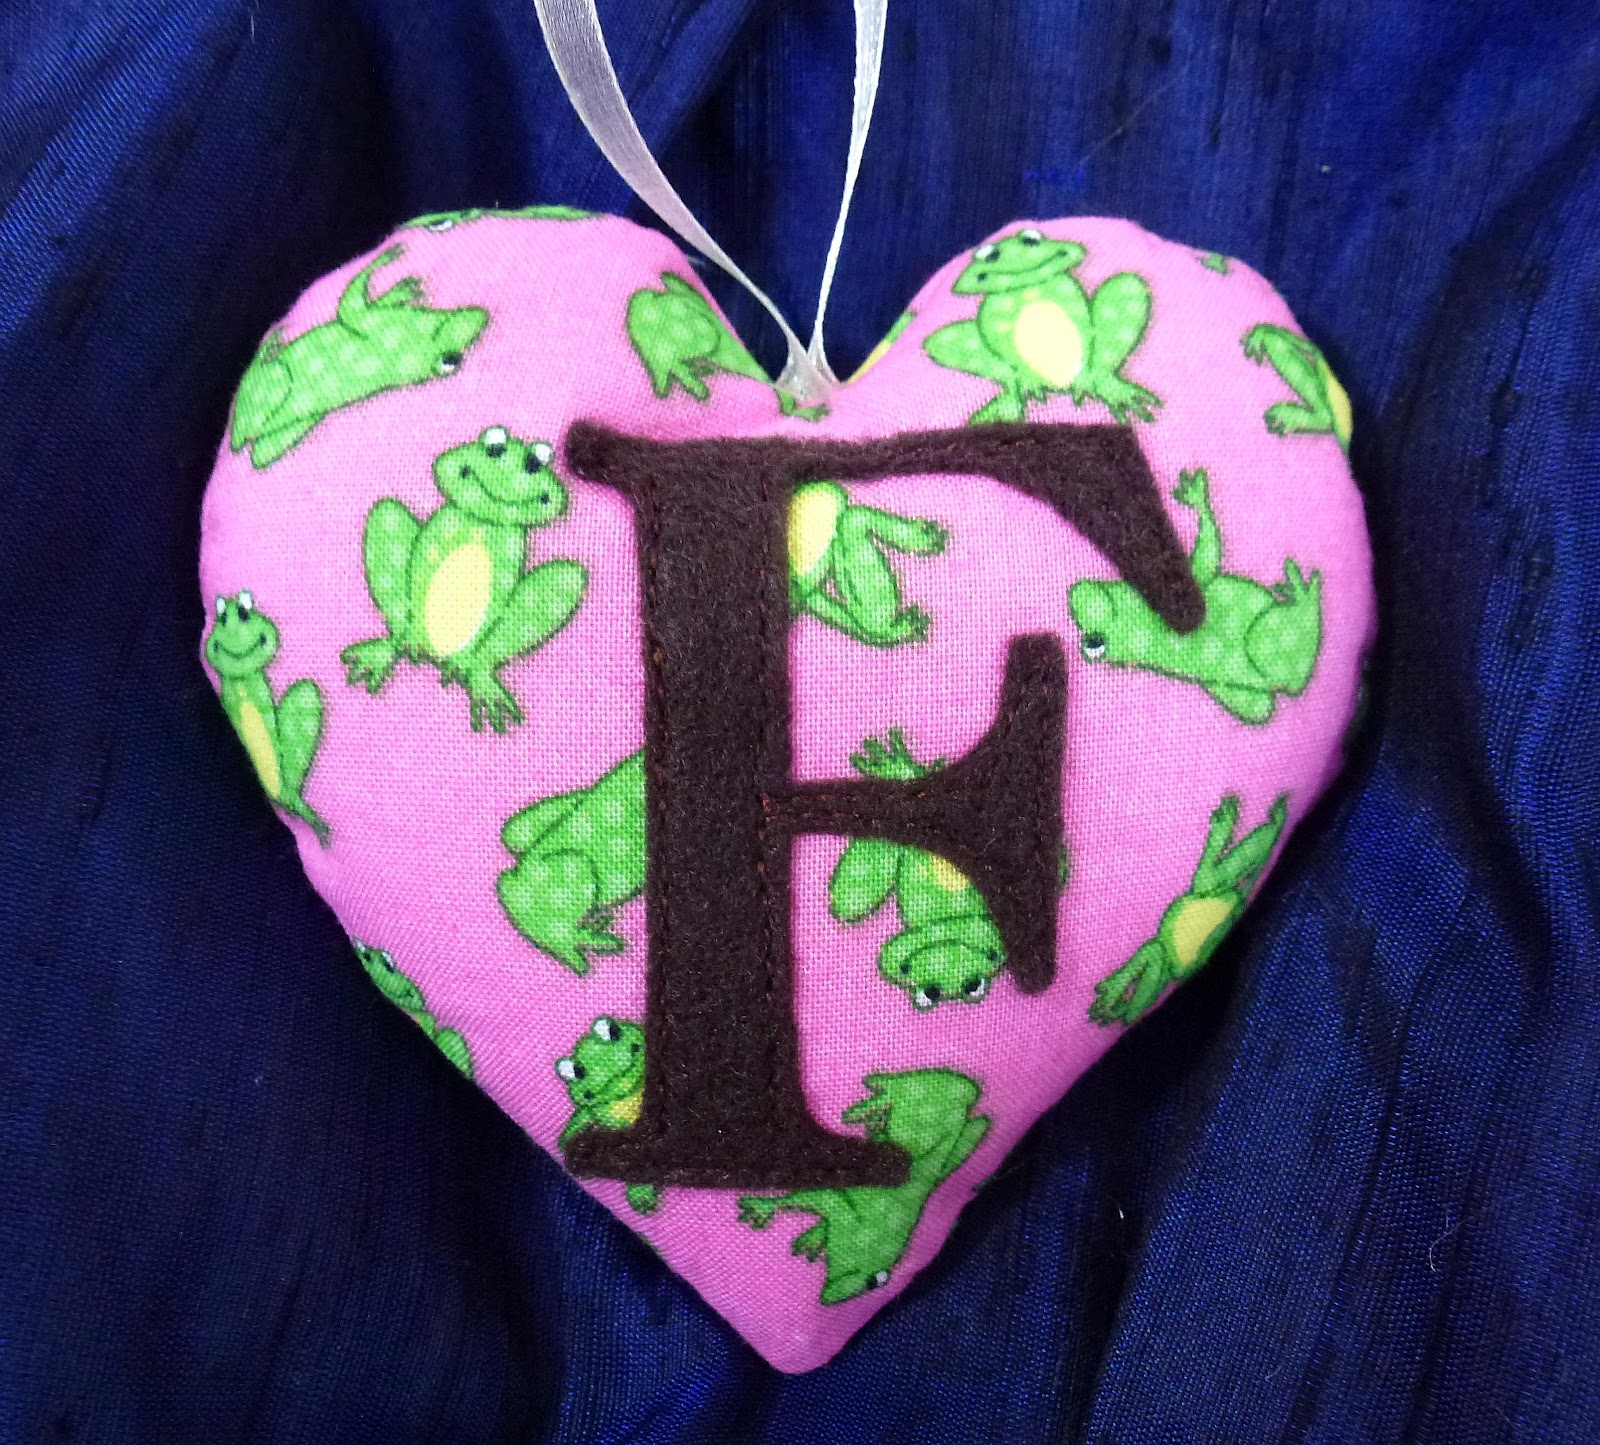 365 Sewn Hearts: The Alphabet Continues